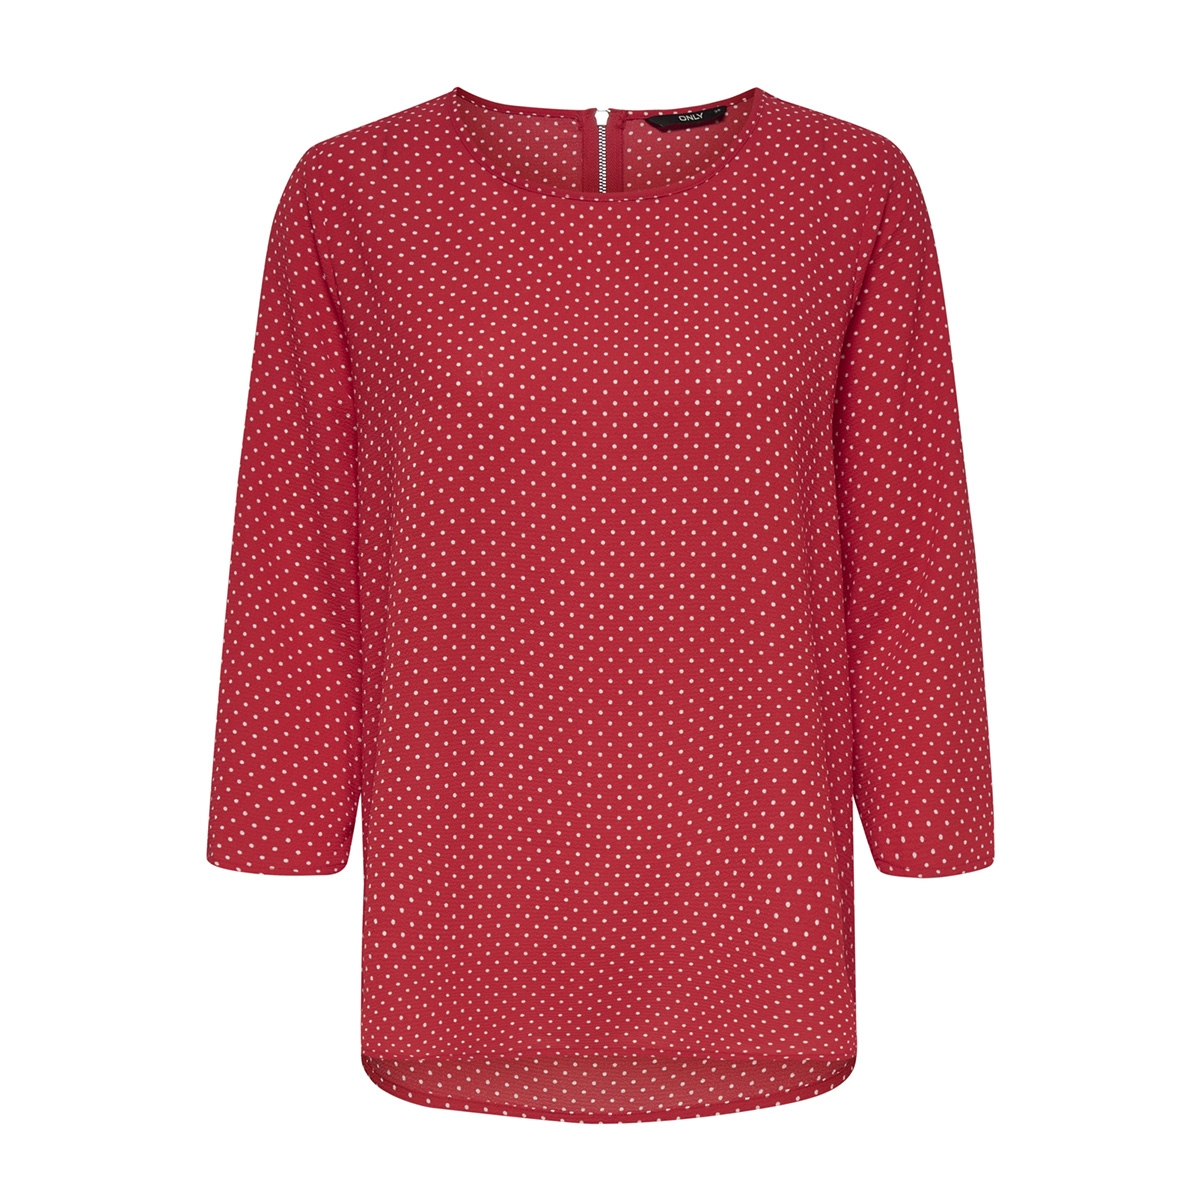 onlnova lux 3/4 sleeve top aop 4 wv 15172743 only t-shirt flame scarlet/multi dot